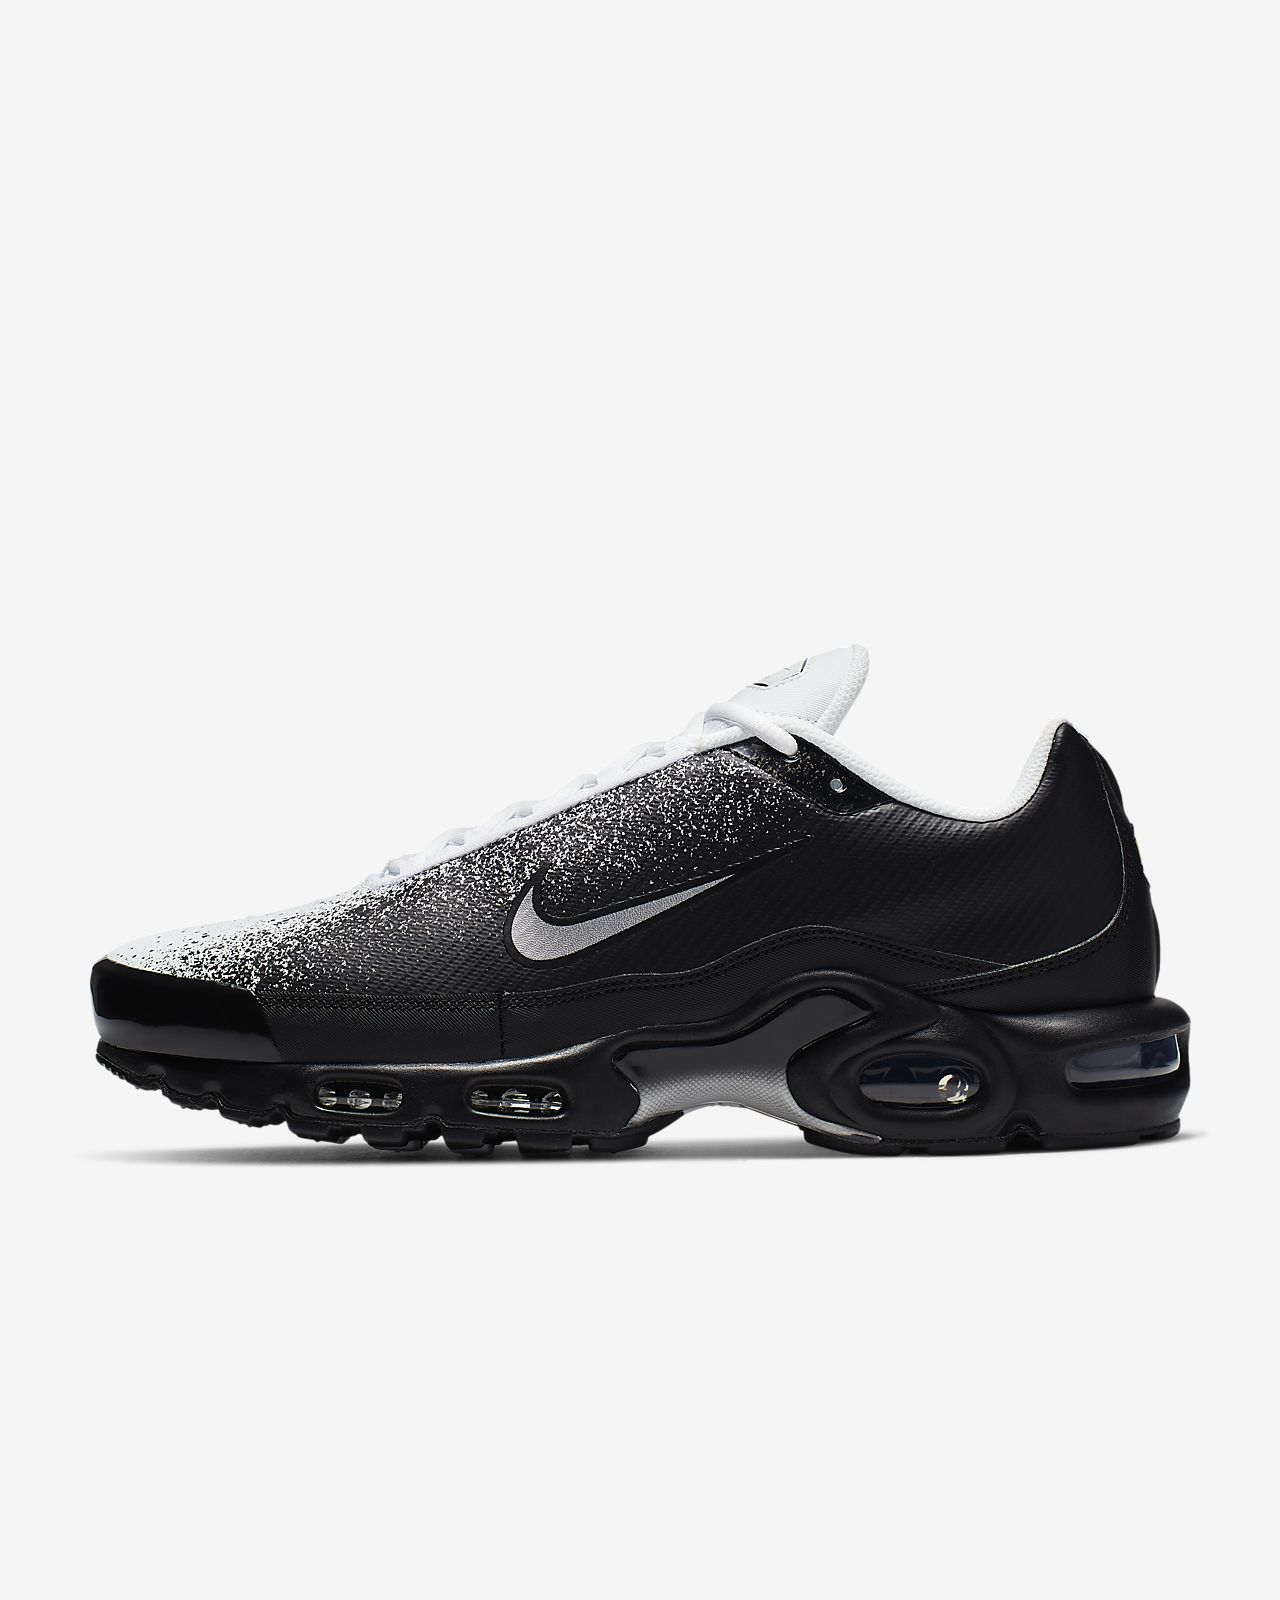 Nike Air Max Plus Tn SE Herenschoen